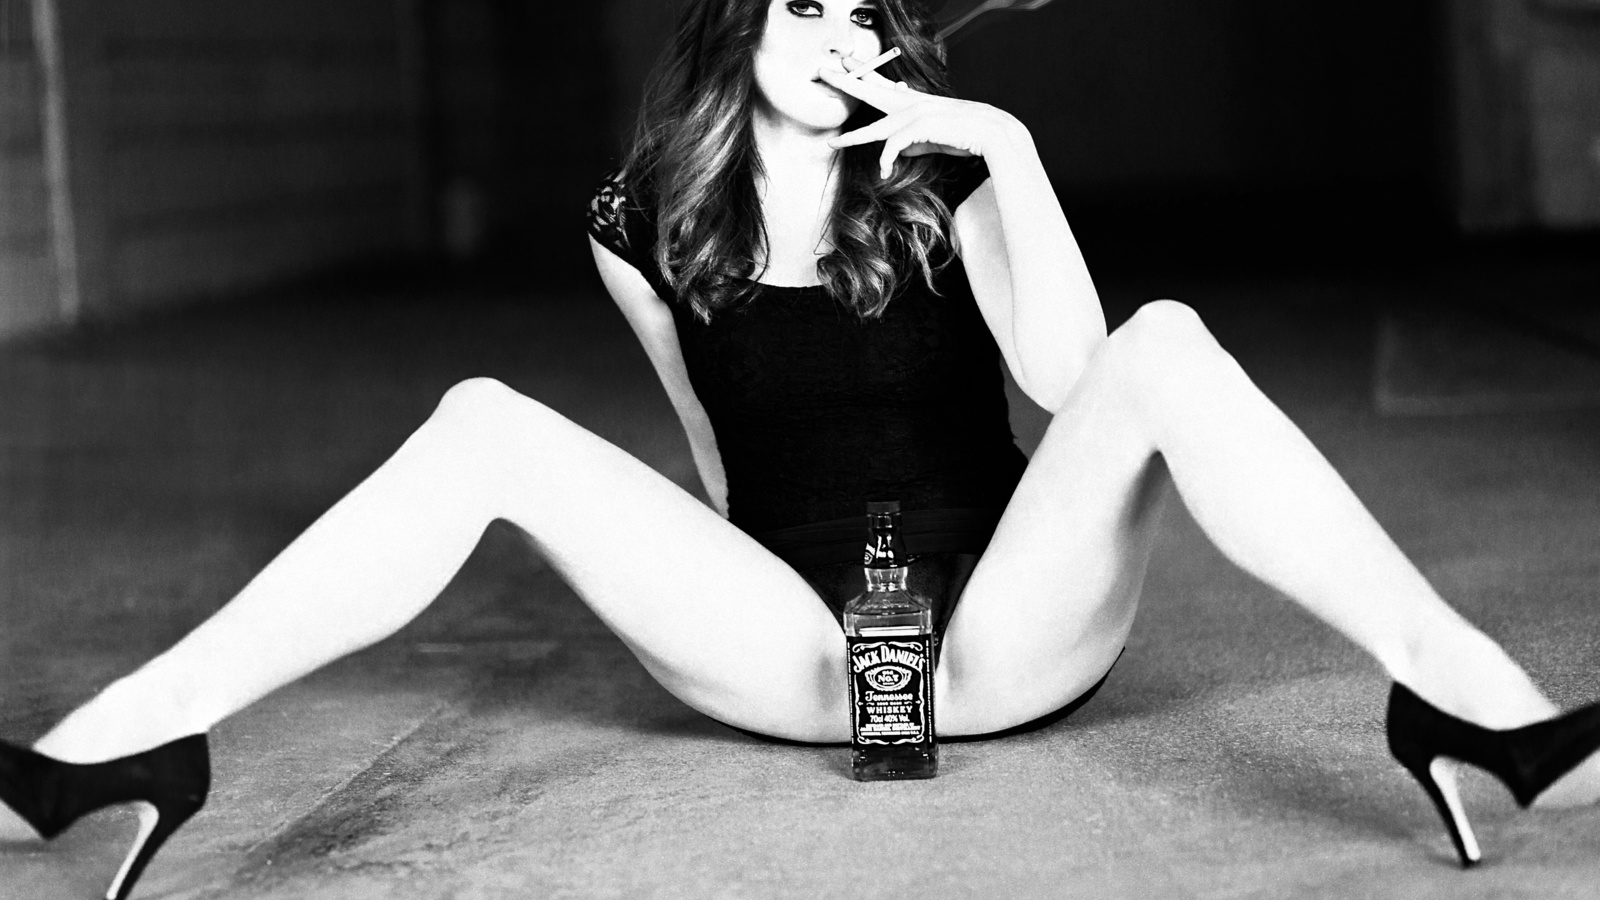 Jack daniels sexy, wildest boobs and pussy